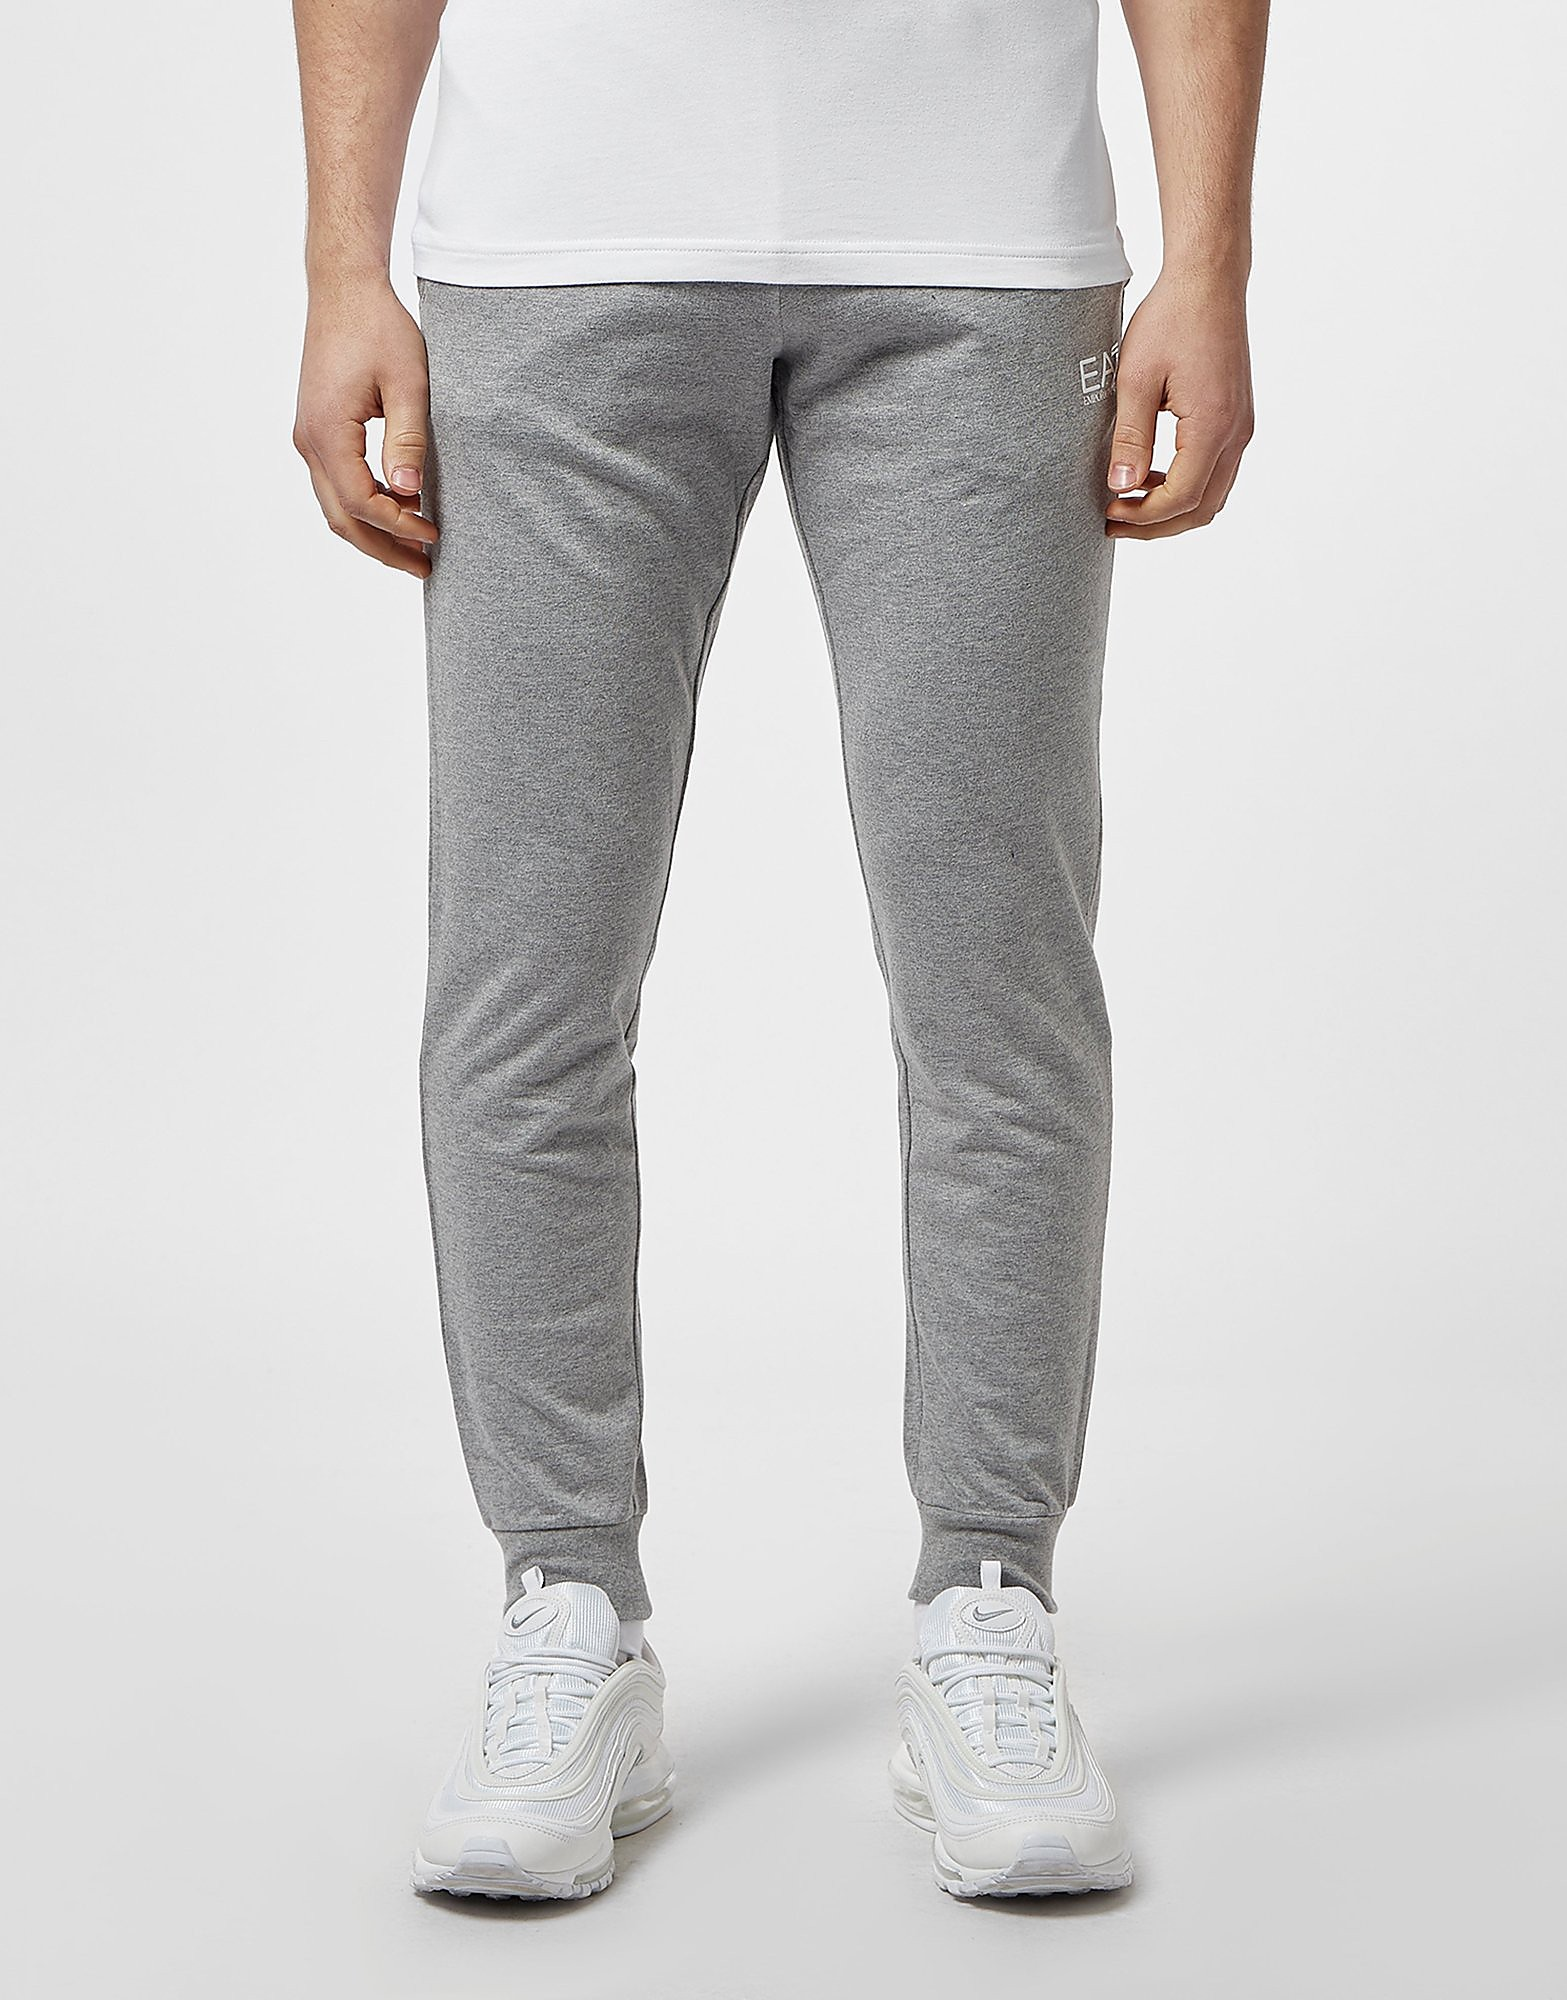 Emporio Armani EA7 Core Slim Cuffed Fleece Pants